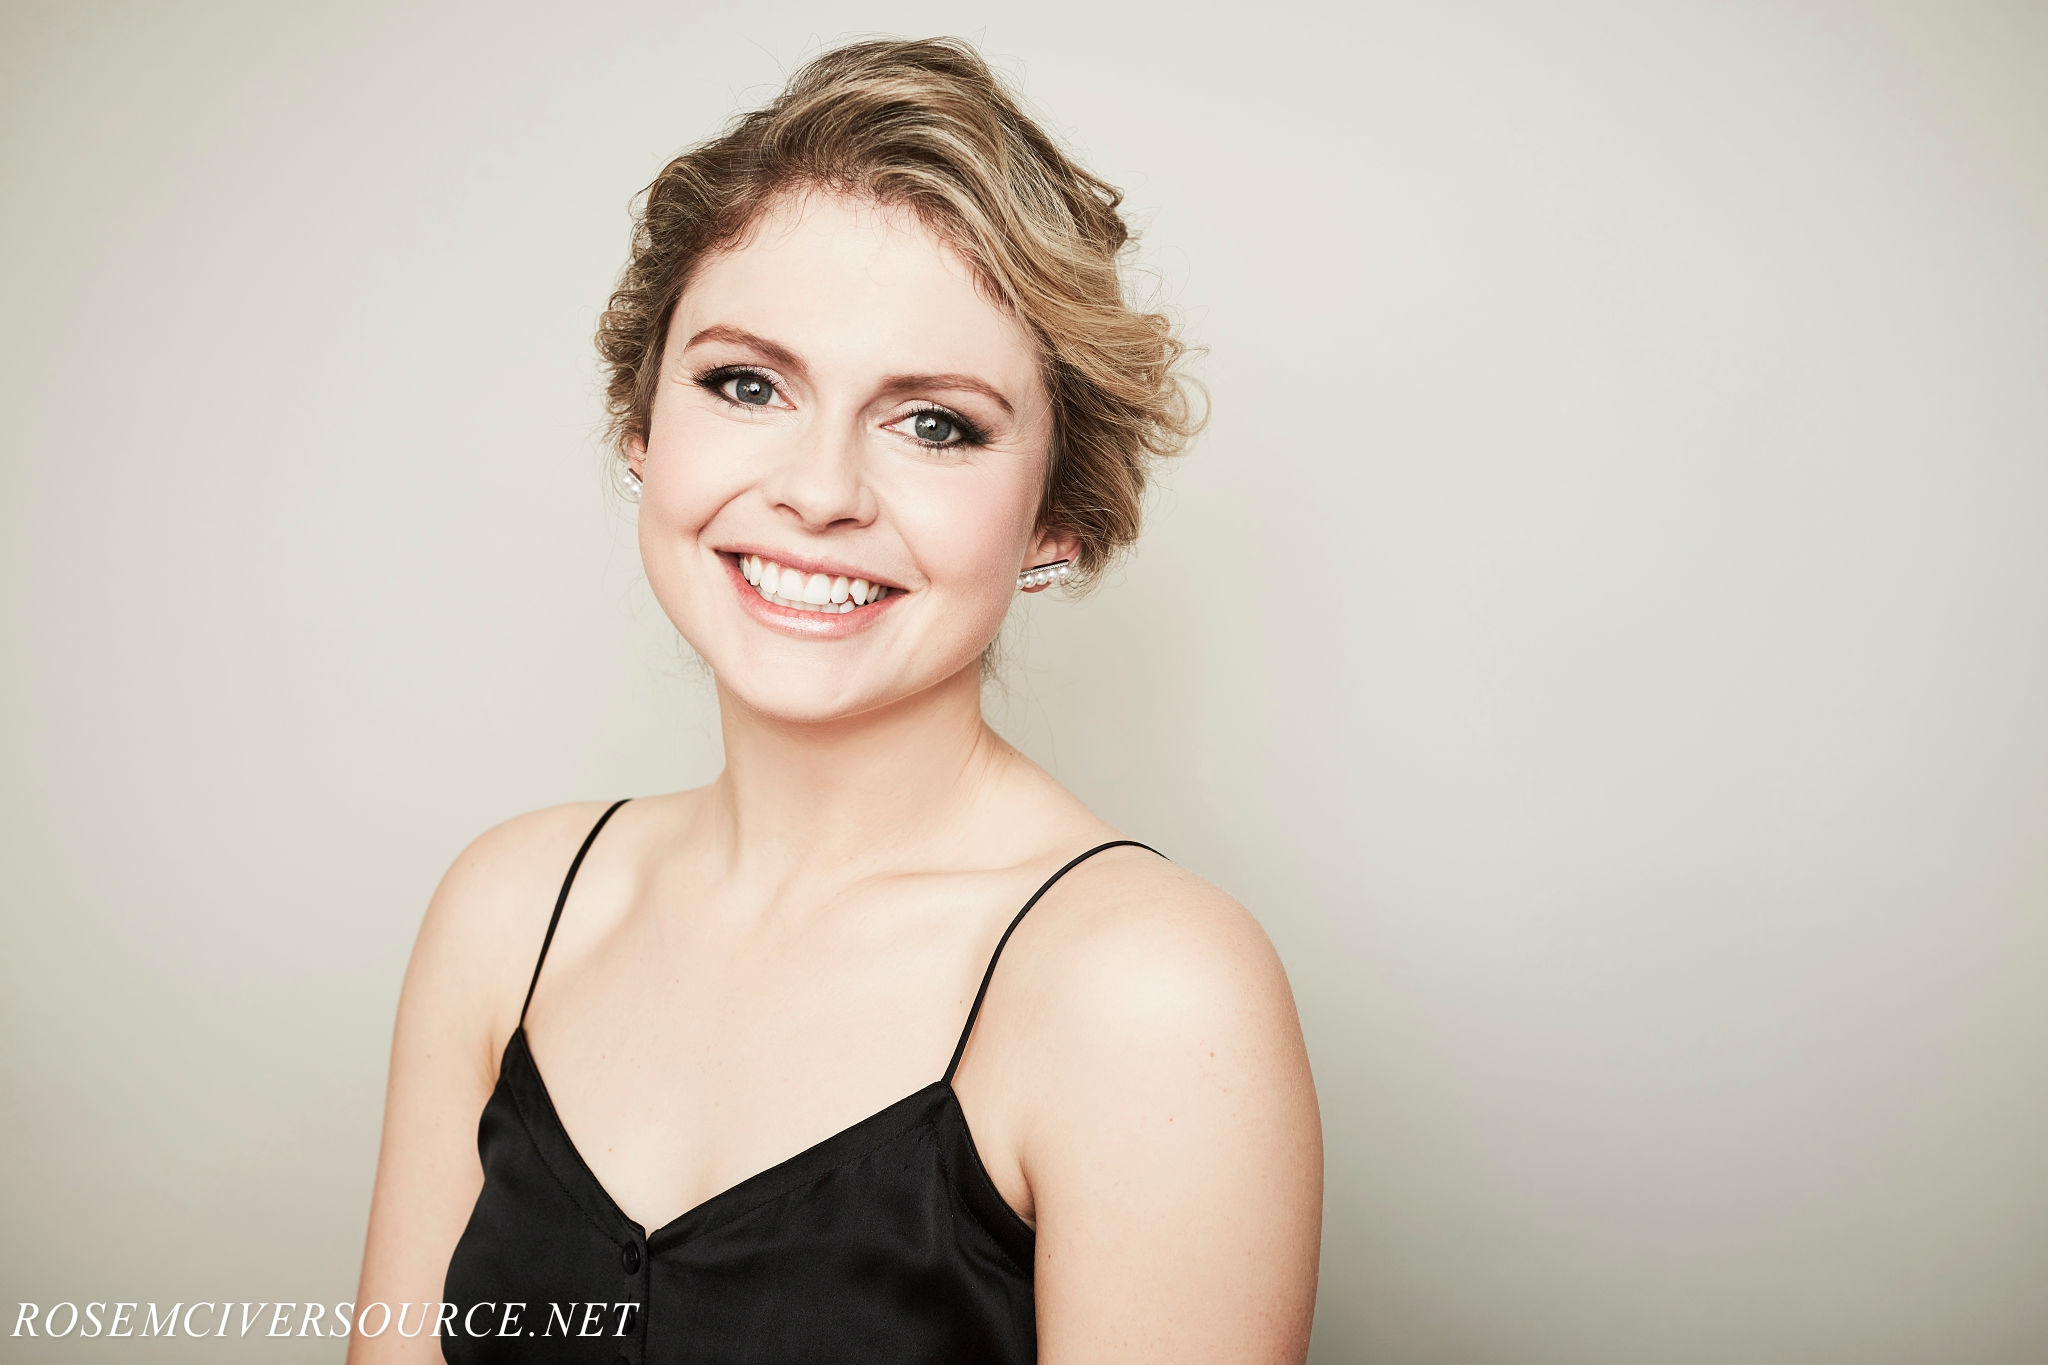 2048x1365 - Rose McIver Wallpapers 3